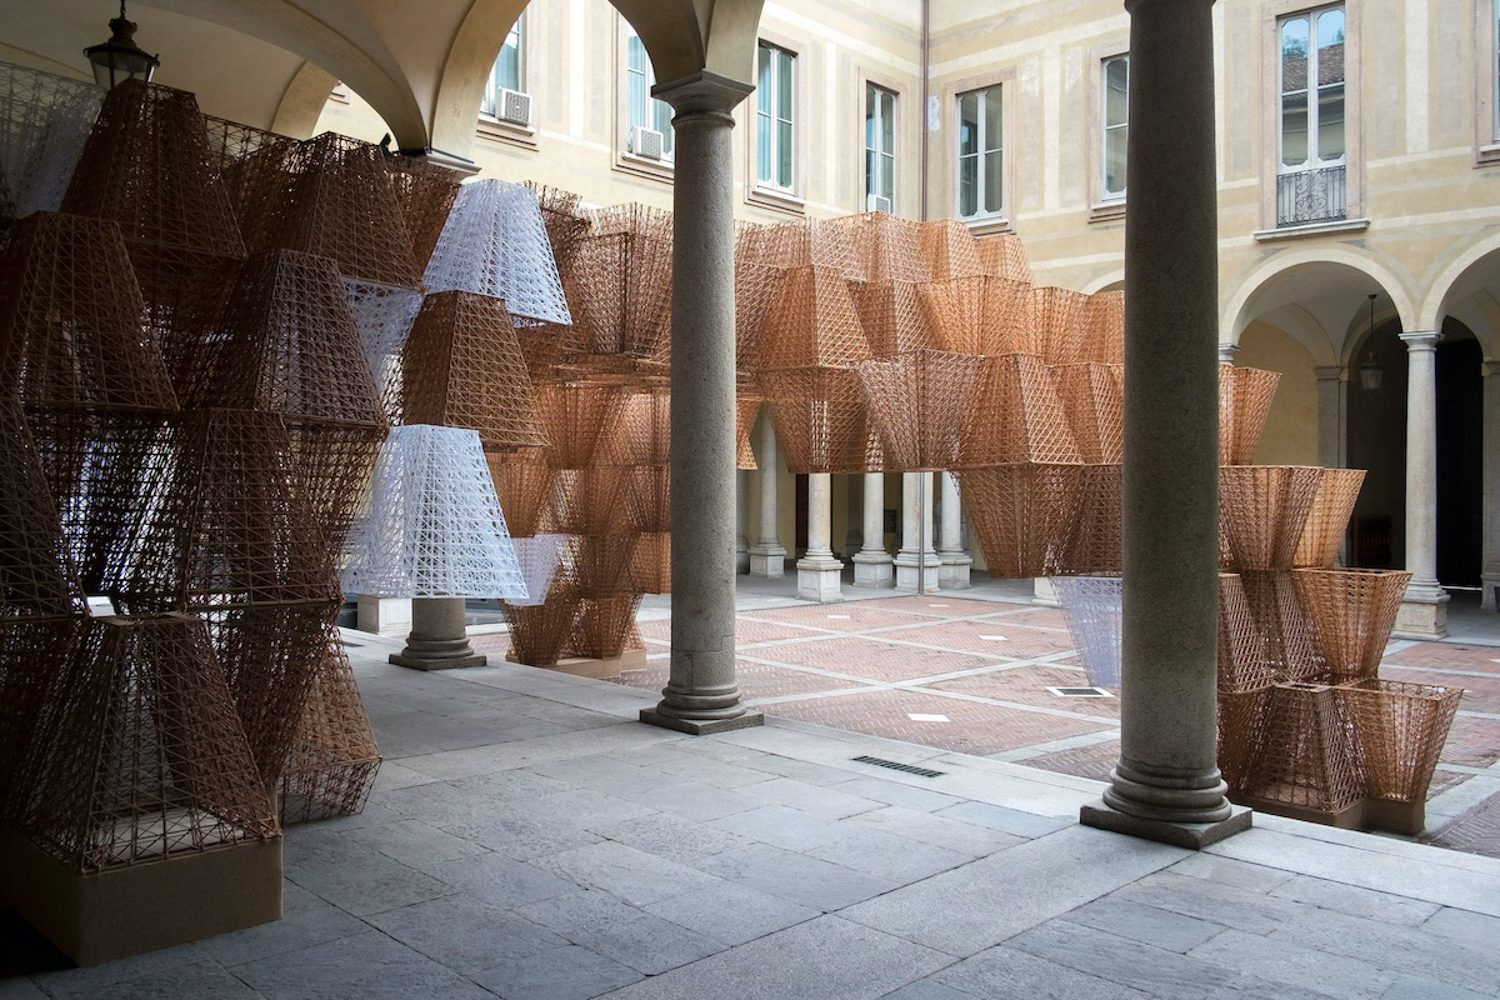 """""""Conifera,"""" an installation by Arthur Mamou-Mani presented by fashion label COS at the 2019 edition of the Milan Furniture Fair. Photography courtesy of Mamou-Mani."""